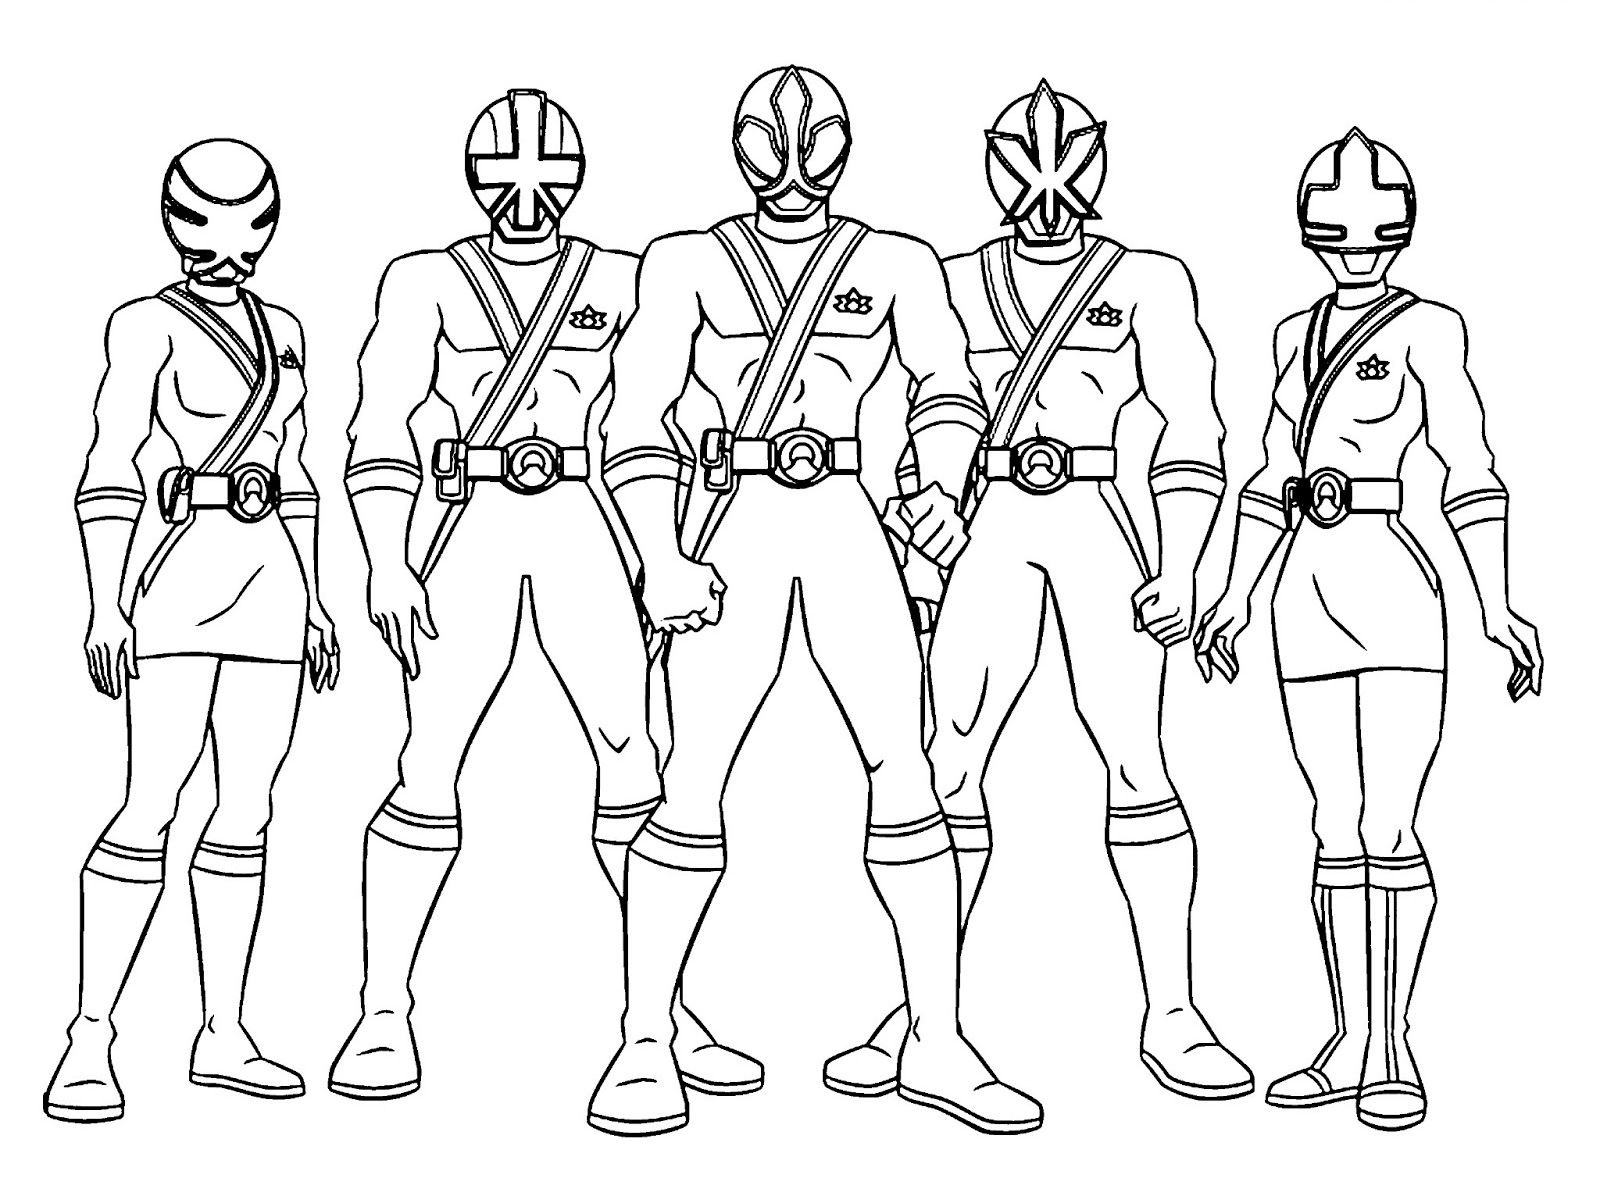 Free online coloring pages of power rangers - Coloring Power Rangers Poses A Team More